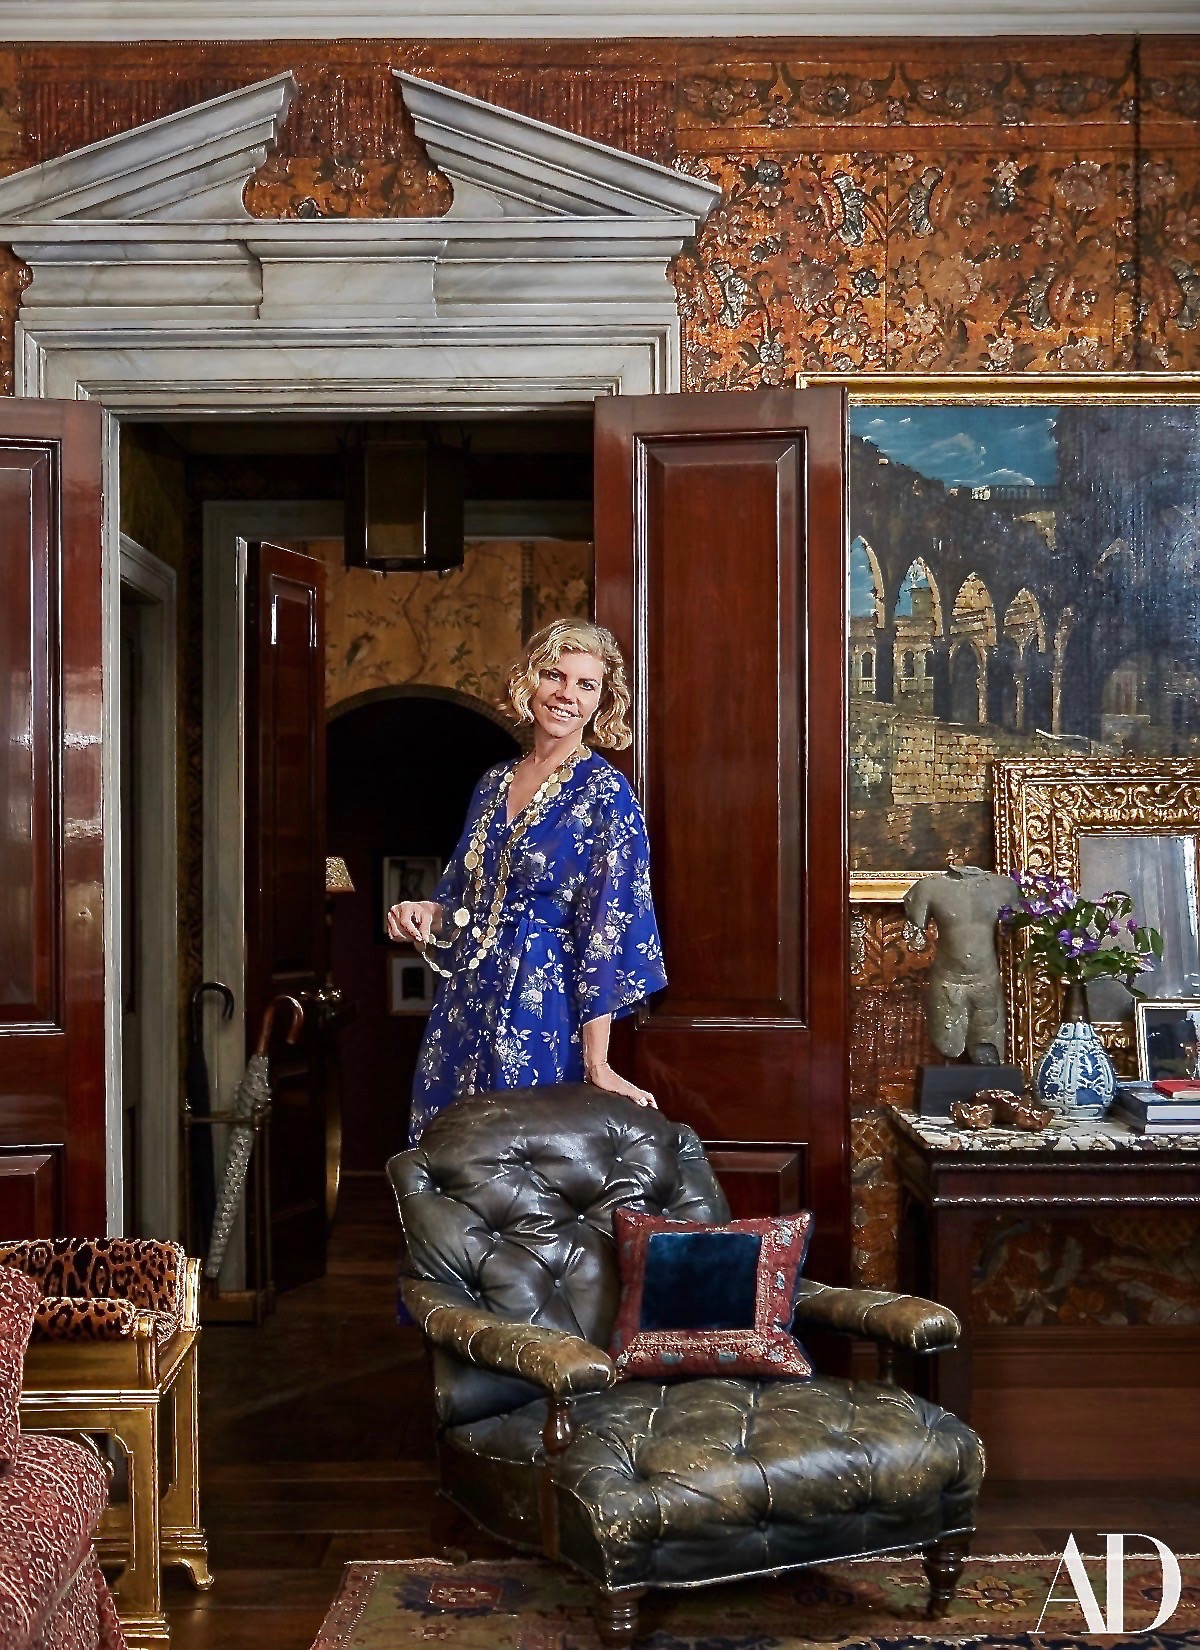 Architectural Digest#Laura#Sartori Rimini#Styled by#Hamish Bowles